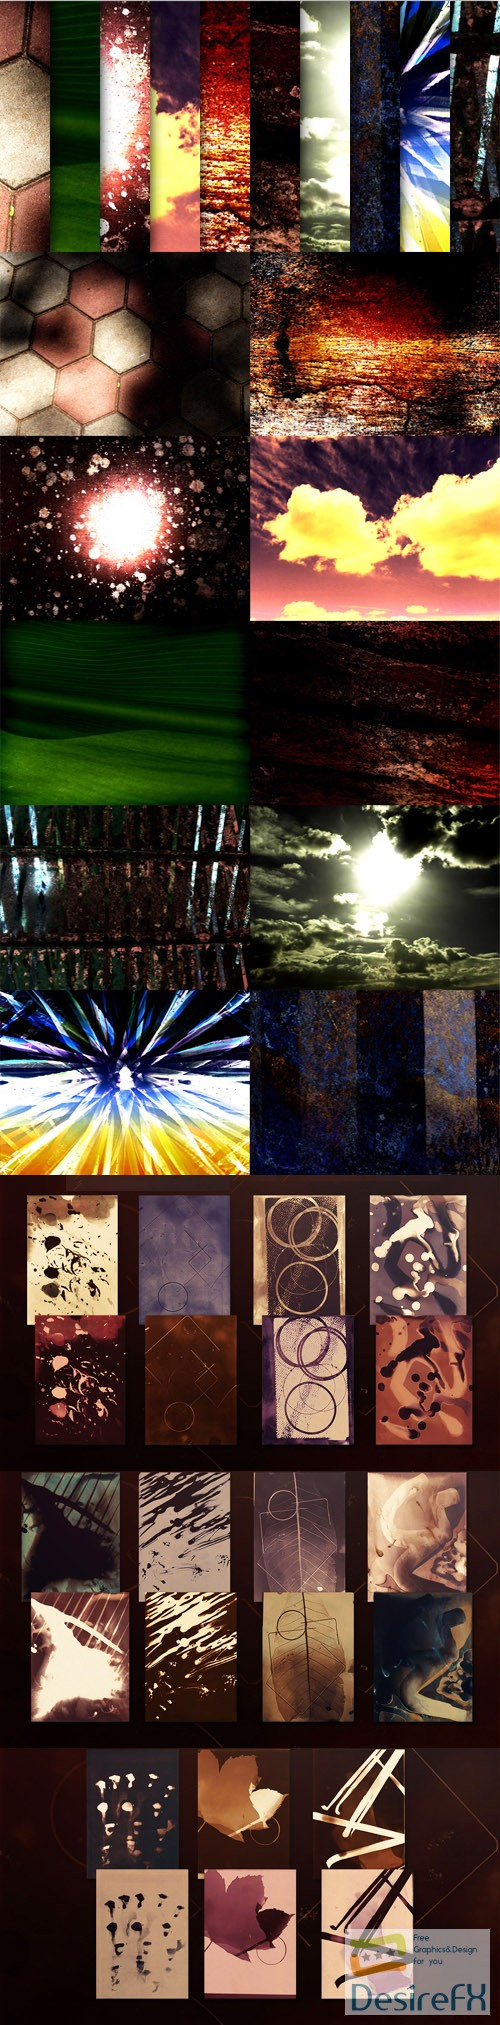 32 Dramatic & Artistic Background Textures